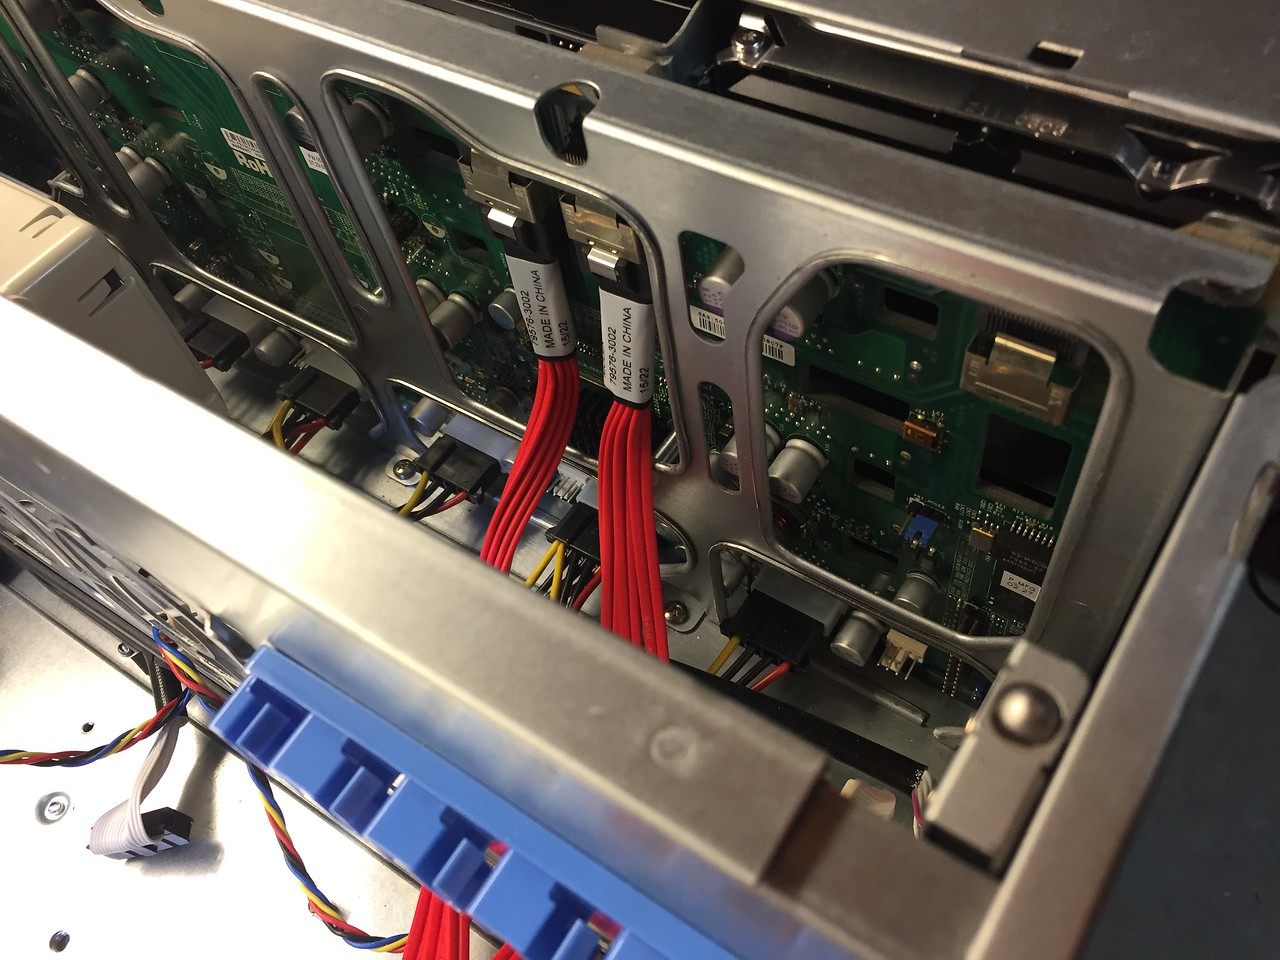 2x SAS2->SATA backplane cables installed